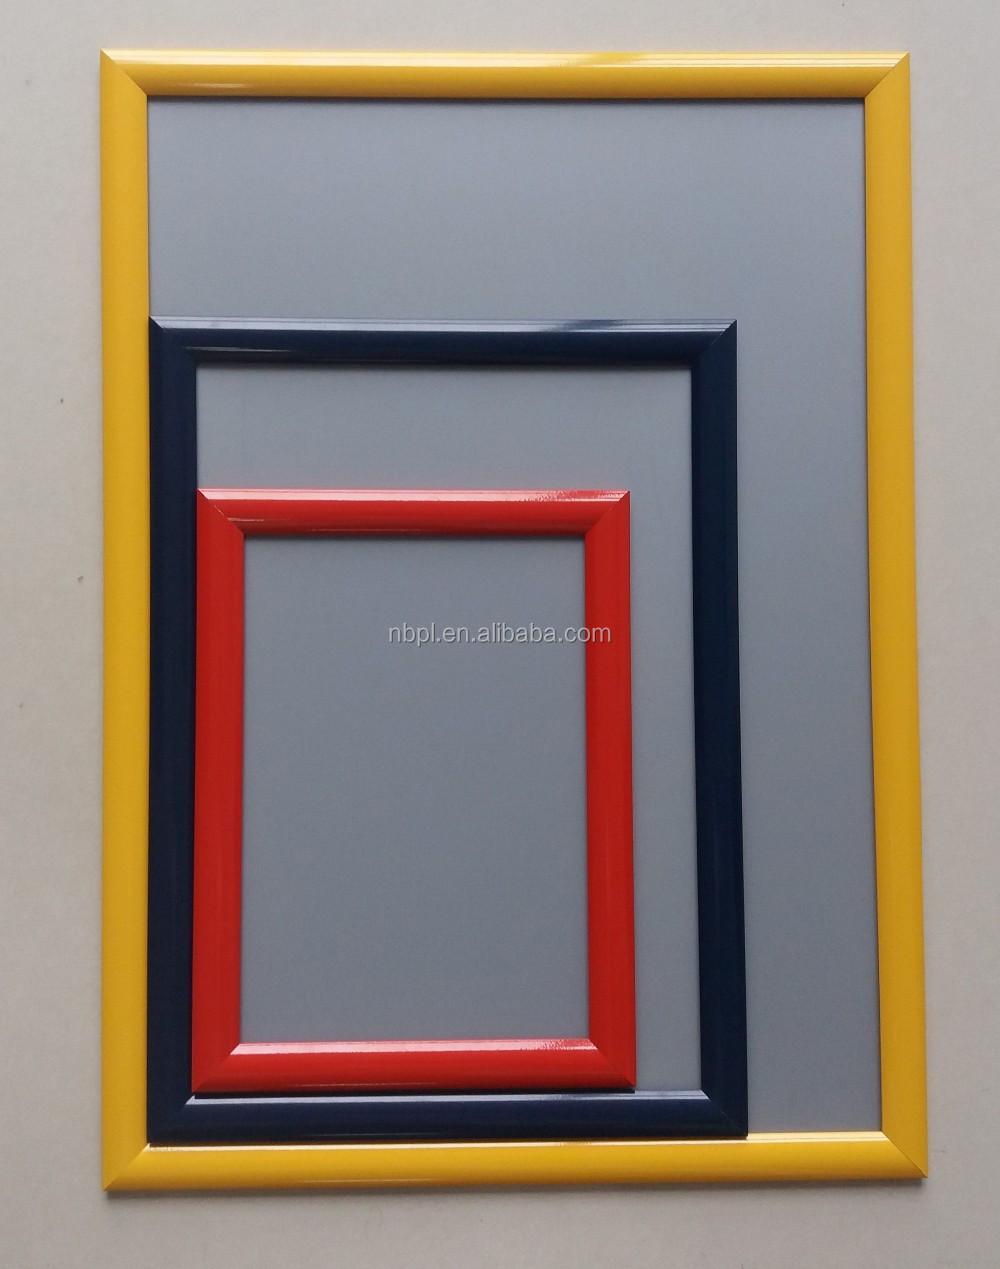 Wall Hanging Red Poster Frame B1 Aluminium Snap Channel Frame 24*36 ...